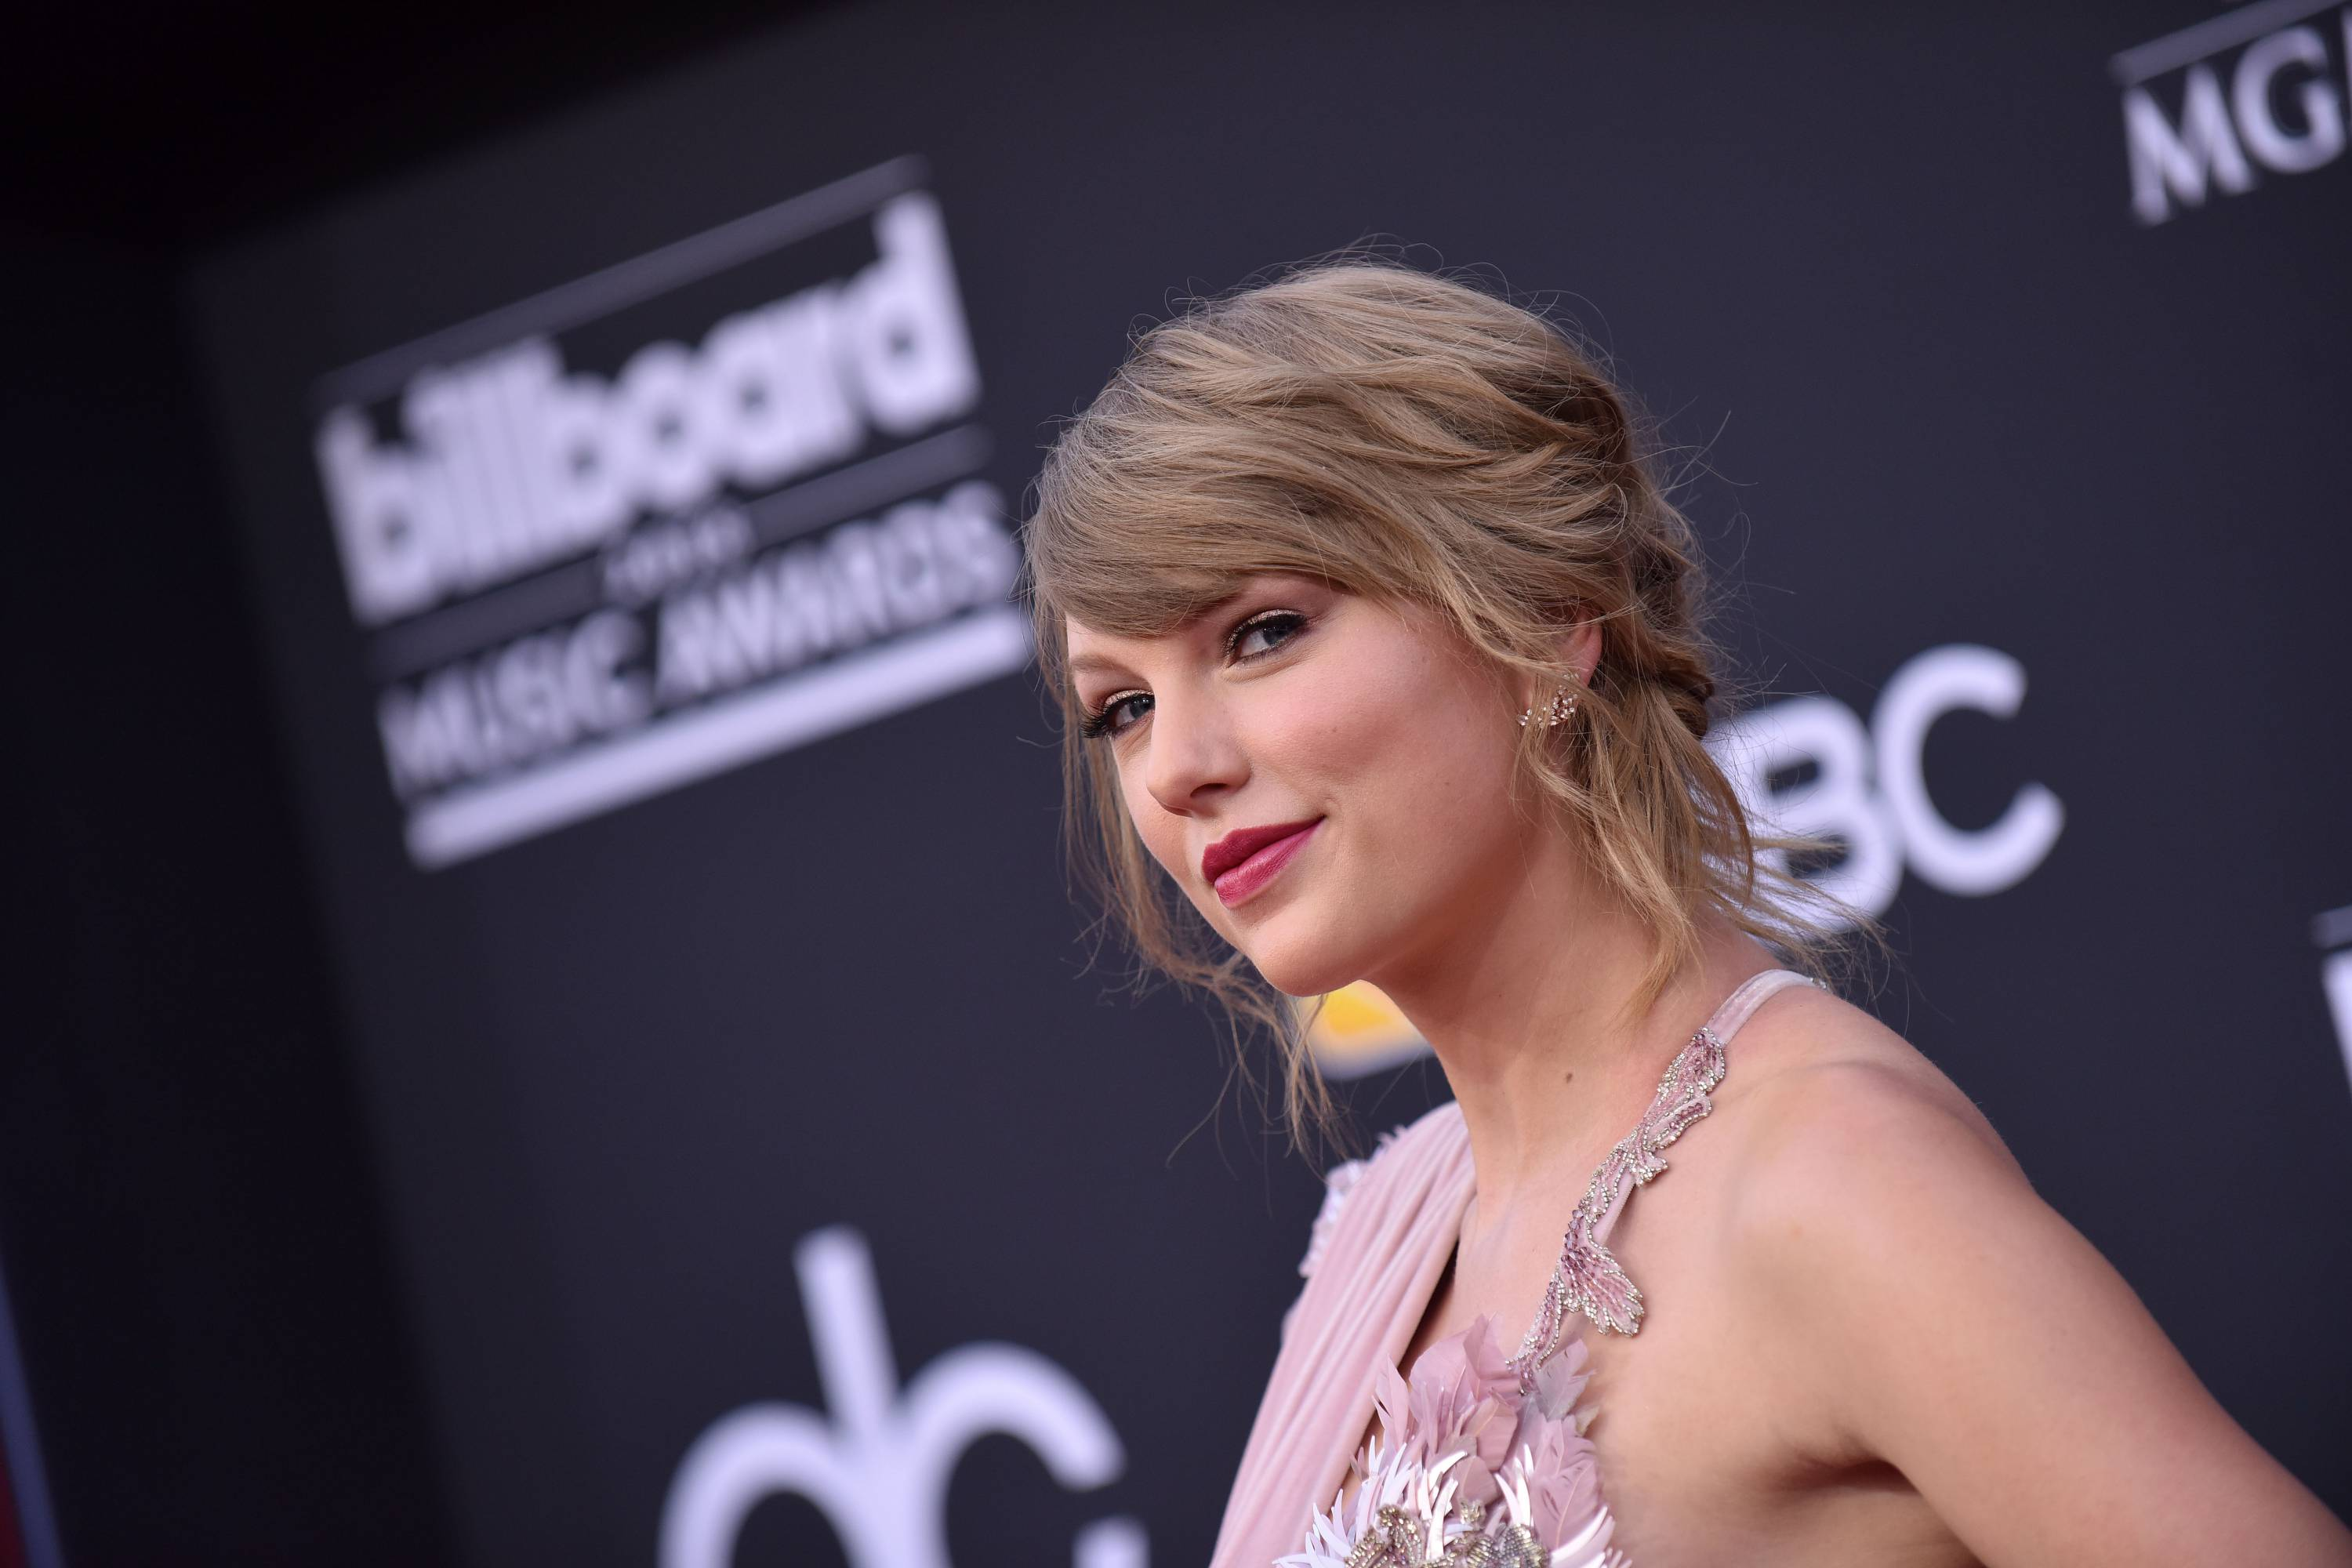 ENTERTAINMENT-US-MUSIC-BILLBOARD-AWARDS